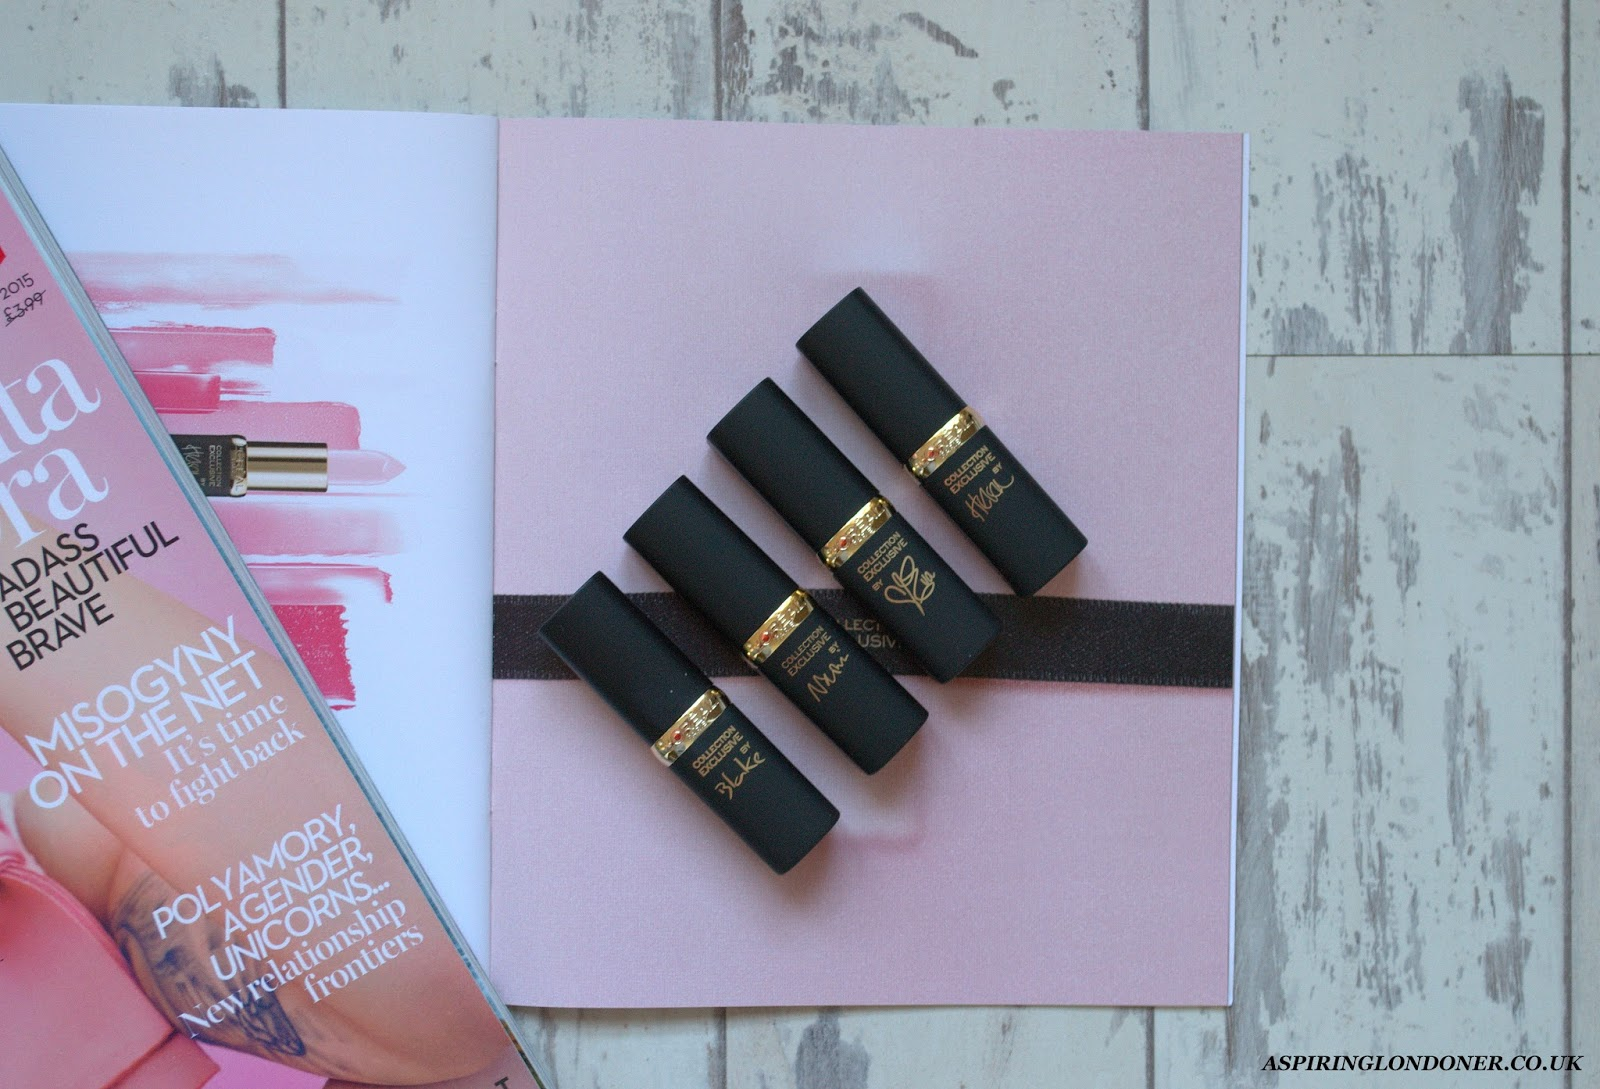 L'Oreal La Vie En Rose Lipstick Collection Exclusive Review Swatch - Aspiring Londoner